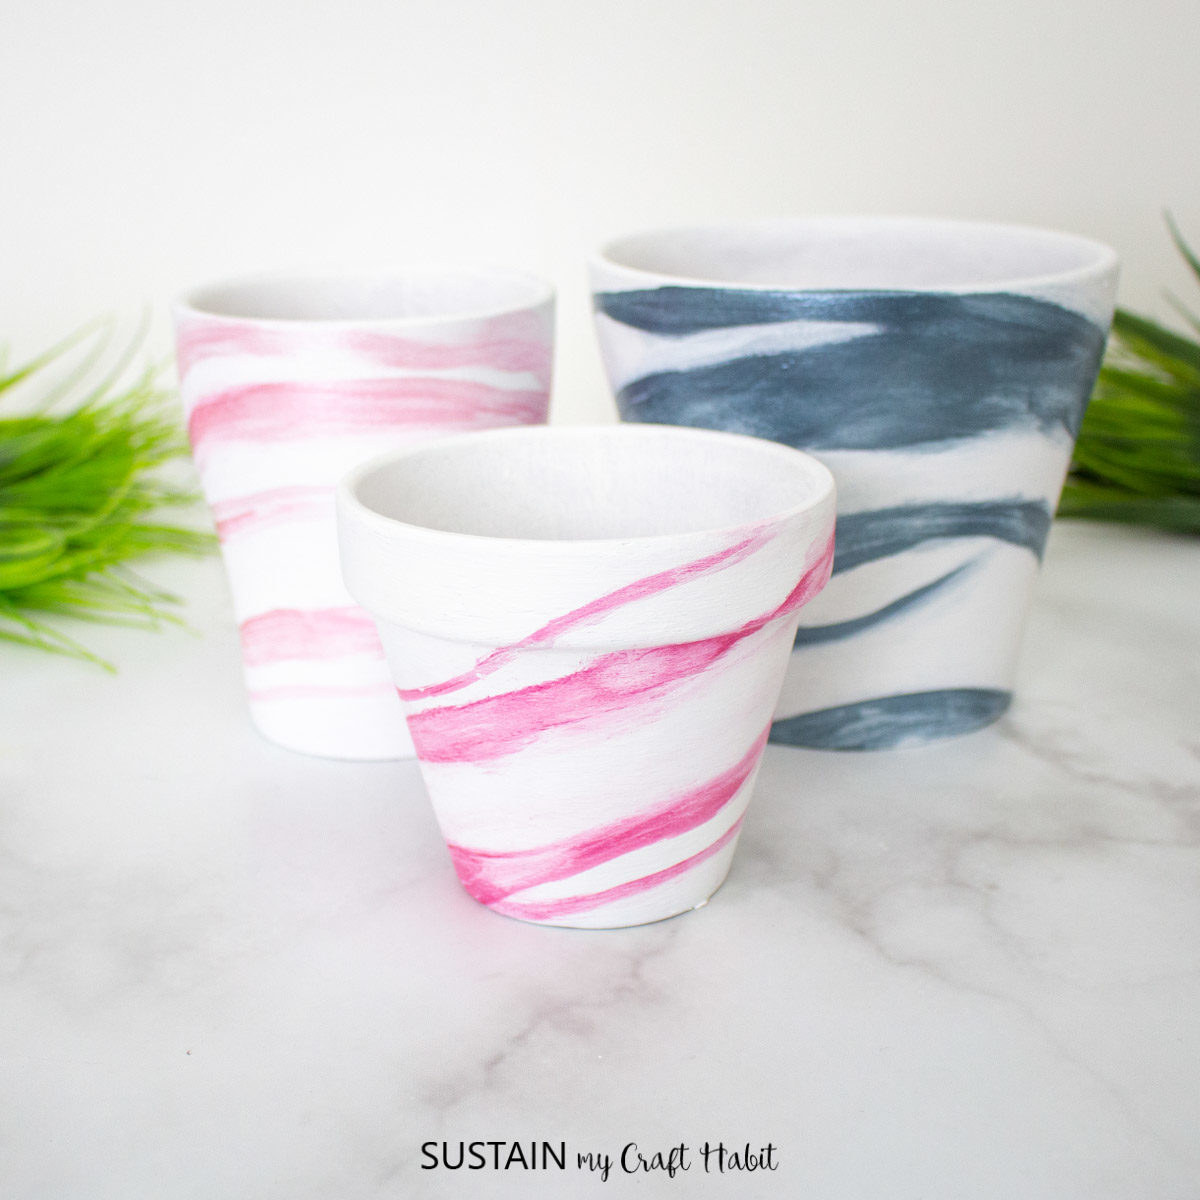 Terracotta pots painted with pink and blue marble effects.